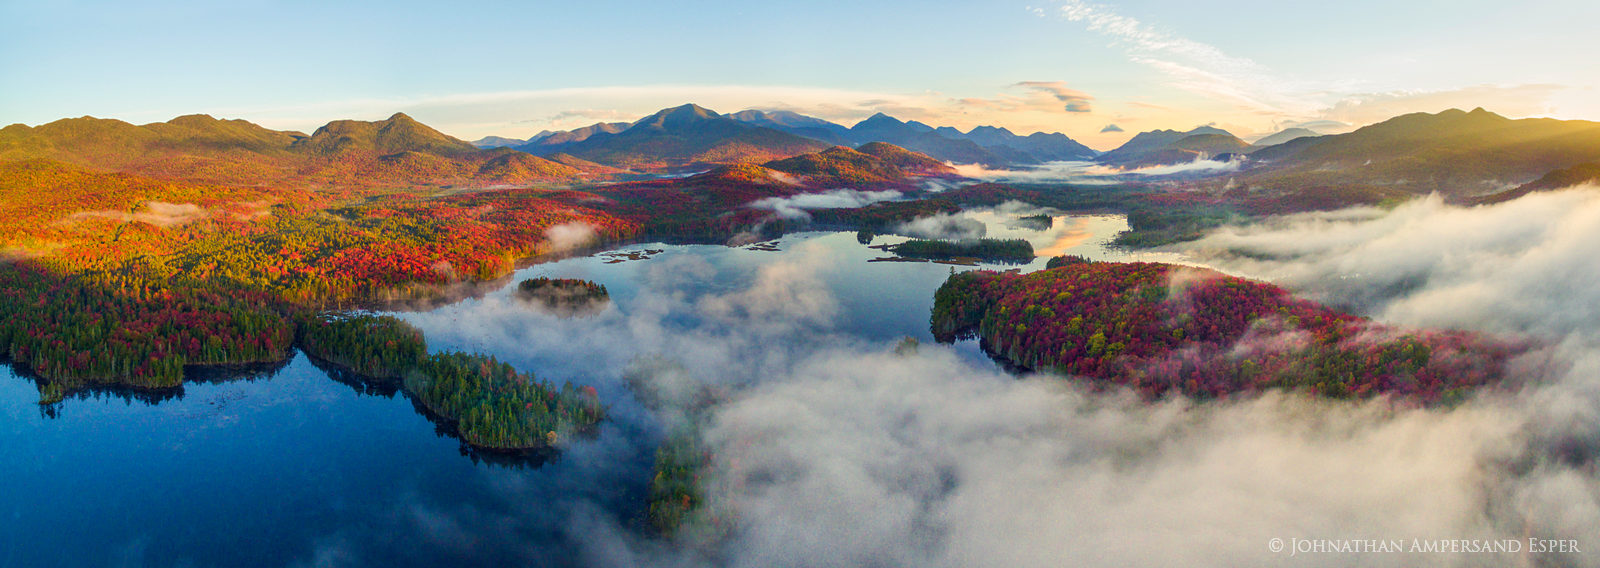 drone,aerial,Boreas Pond,Boreas Ponds,Adirondacks,High Peaks,Adirondack High Peaks,fall,2016,panorama,stormclouds,lake,sunrise fog,fog,Allen Mt,Mt Marcy, photo